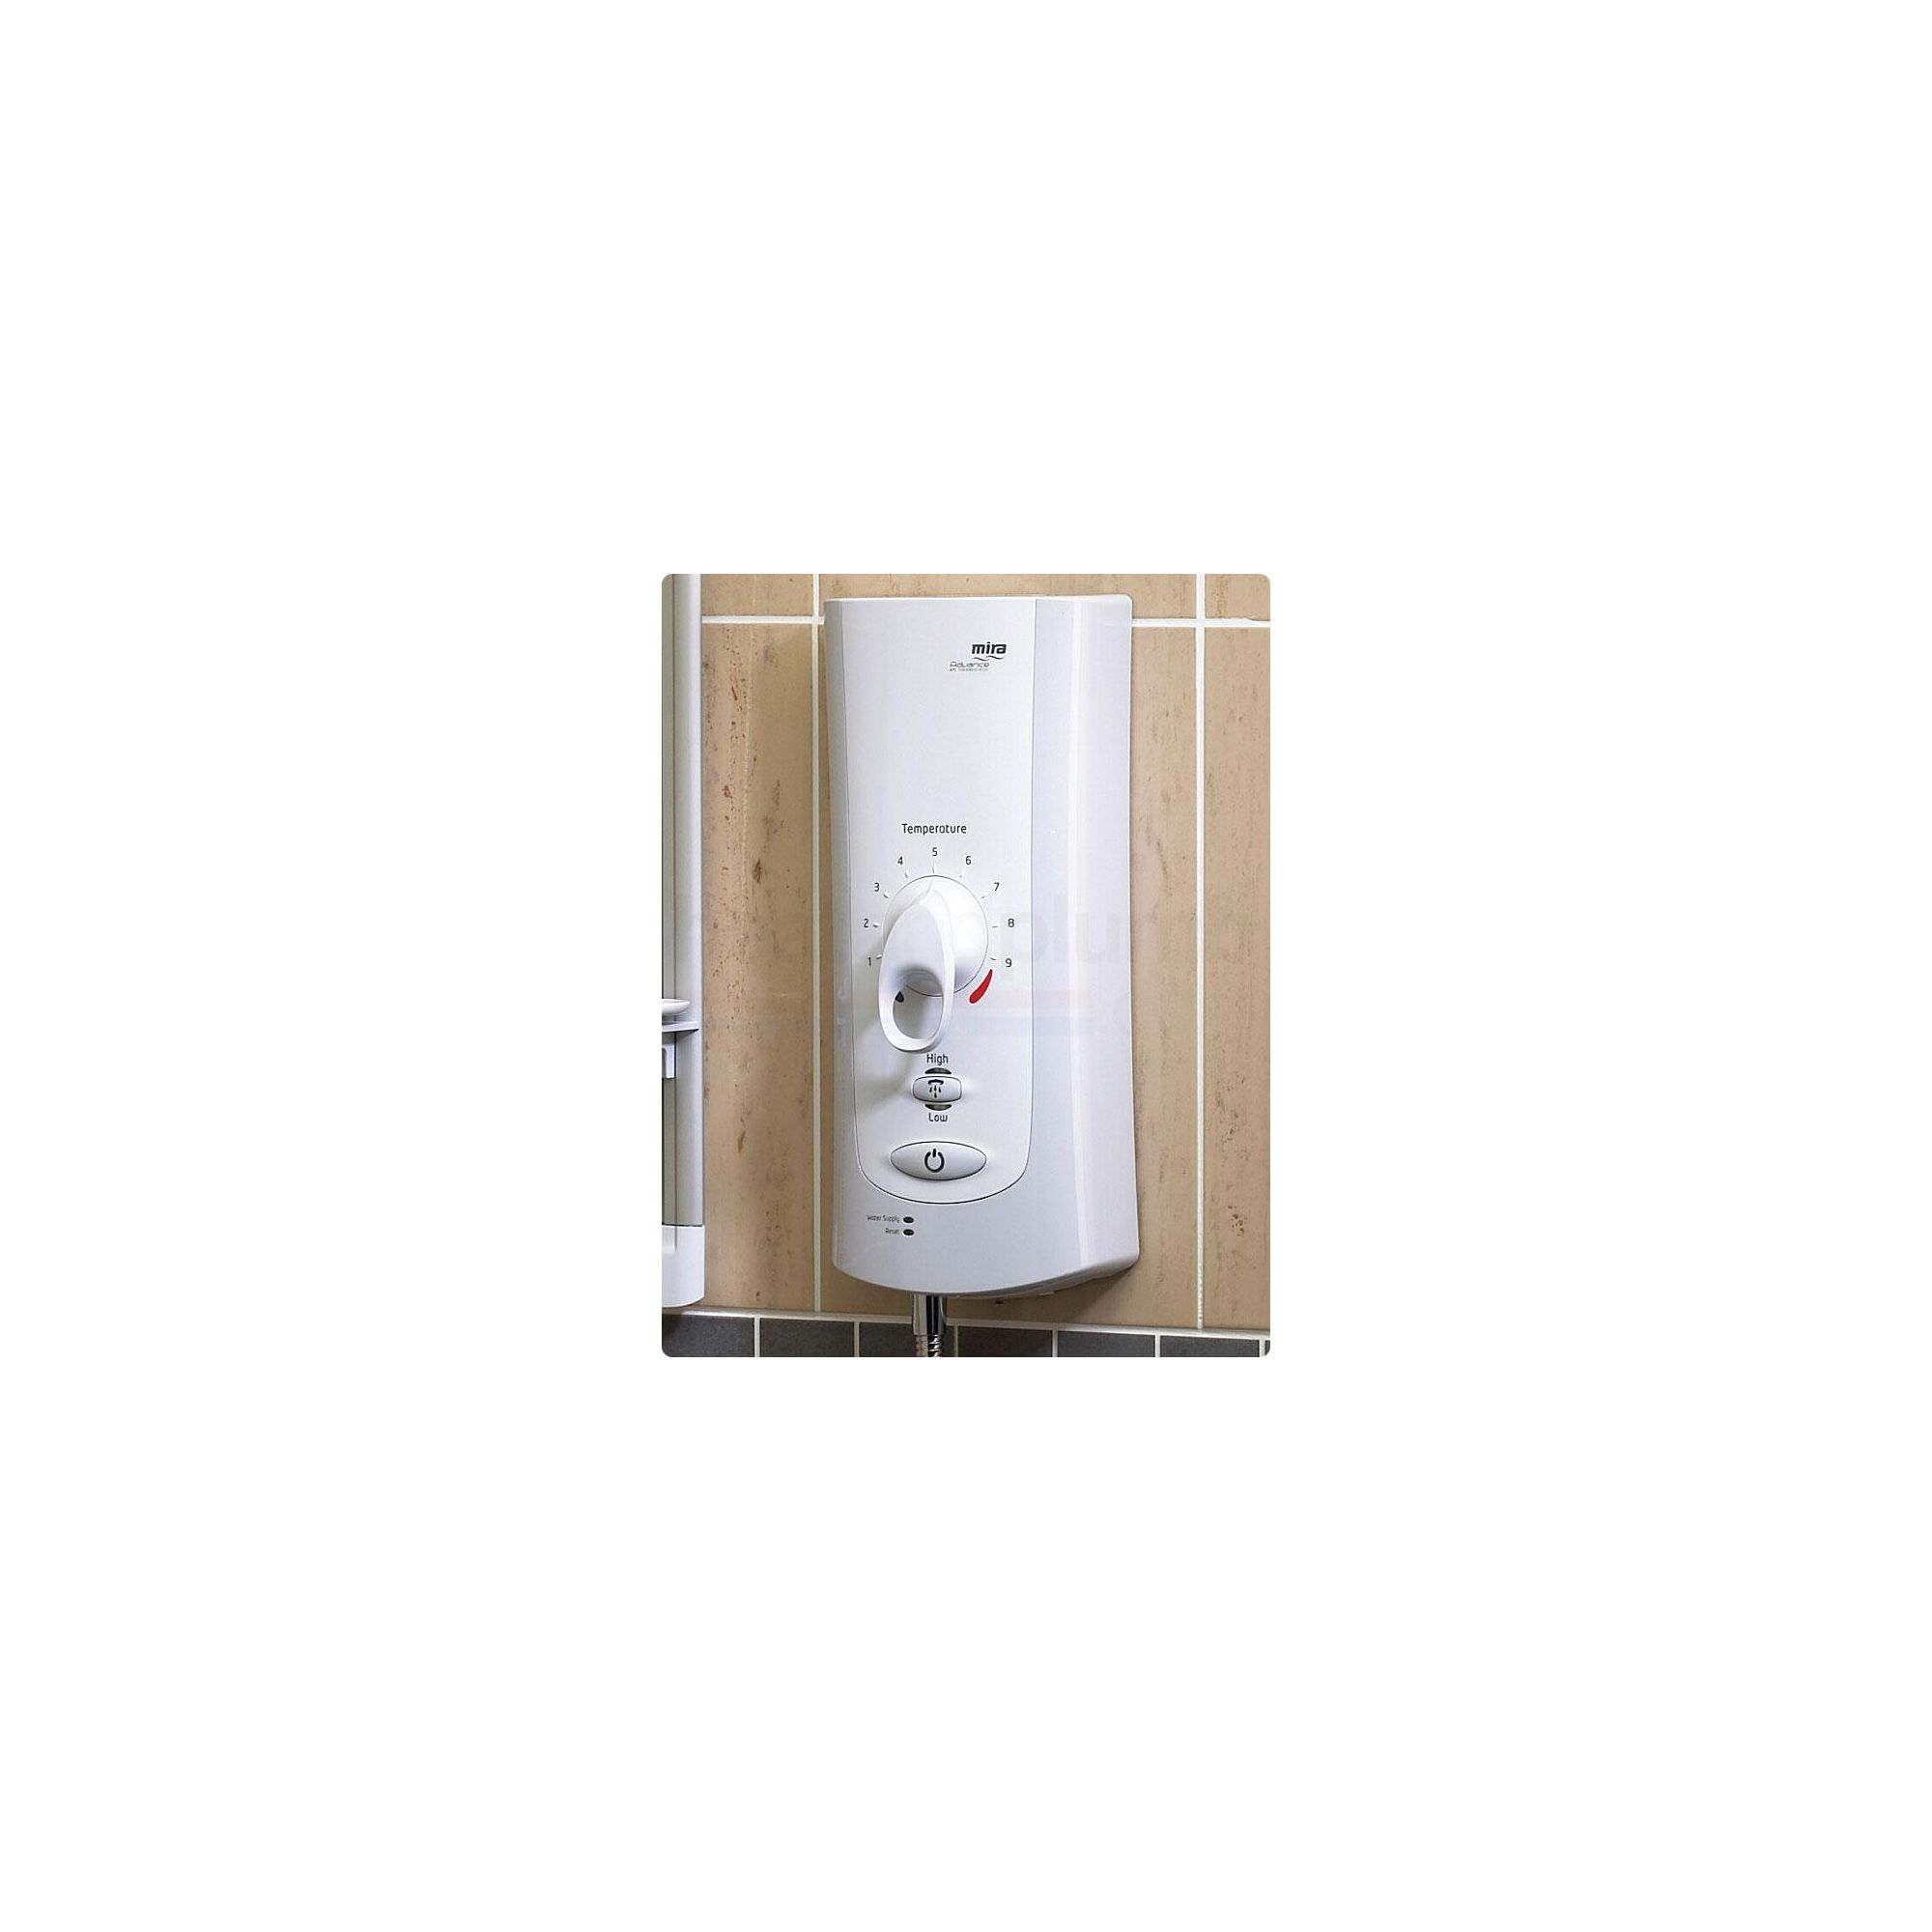 Mira Advance ATL Flex 9.0kW Electric Shower at Tesco Direct